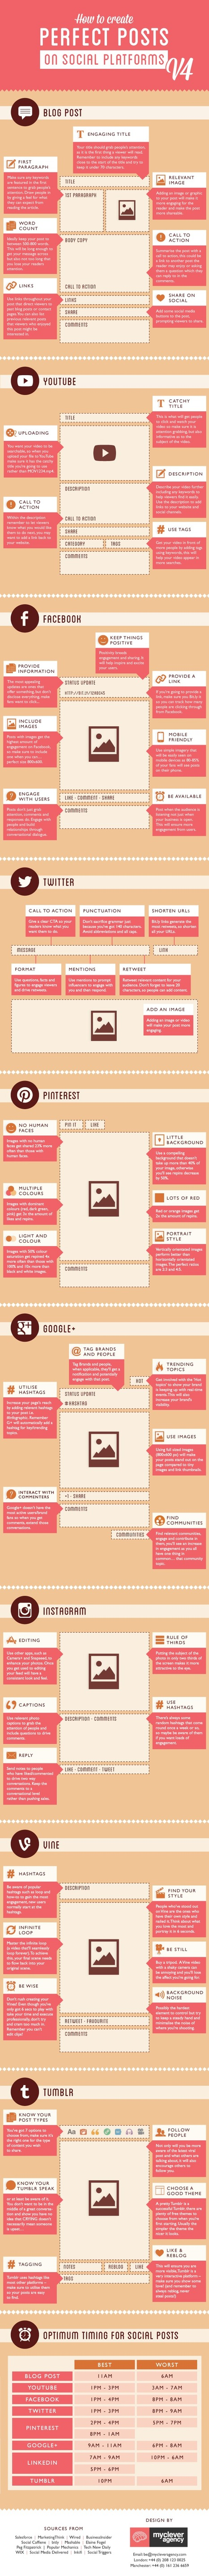 The Art of Creating Perfect Social Media Posts - infographic | Educational Data - Visualizations - Infographics | Scoop.it